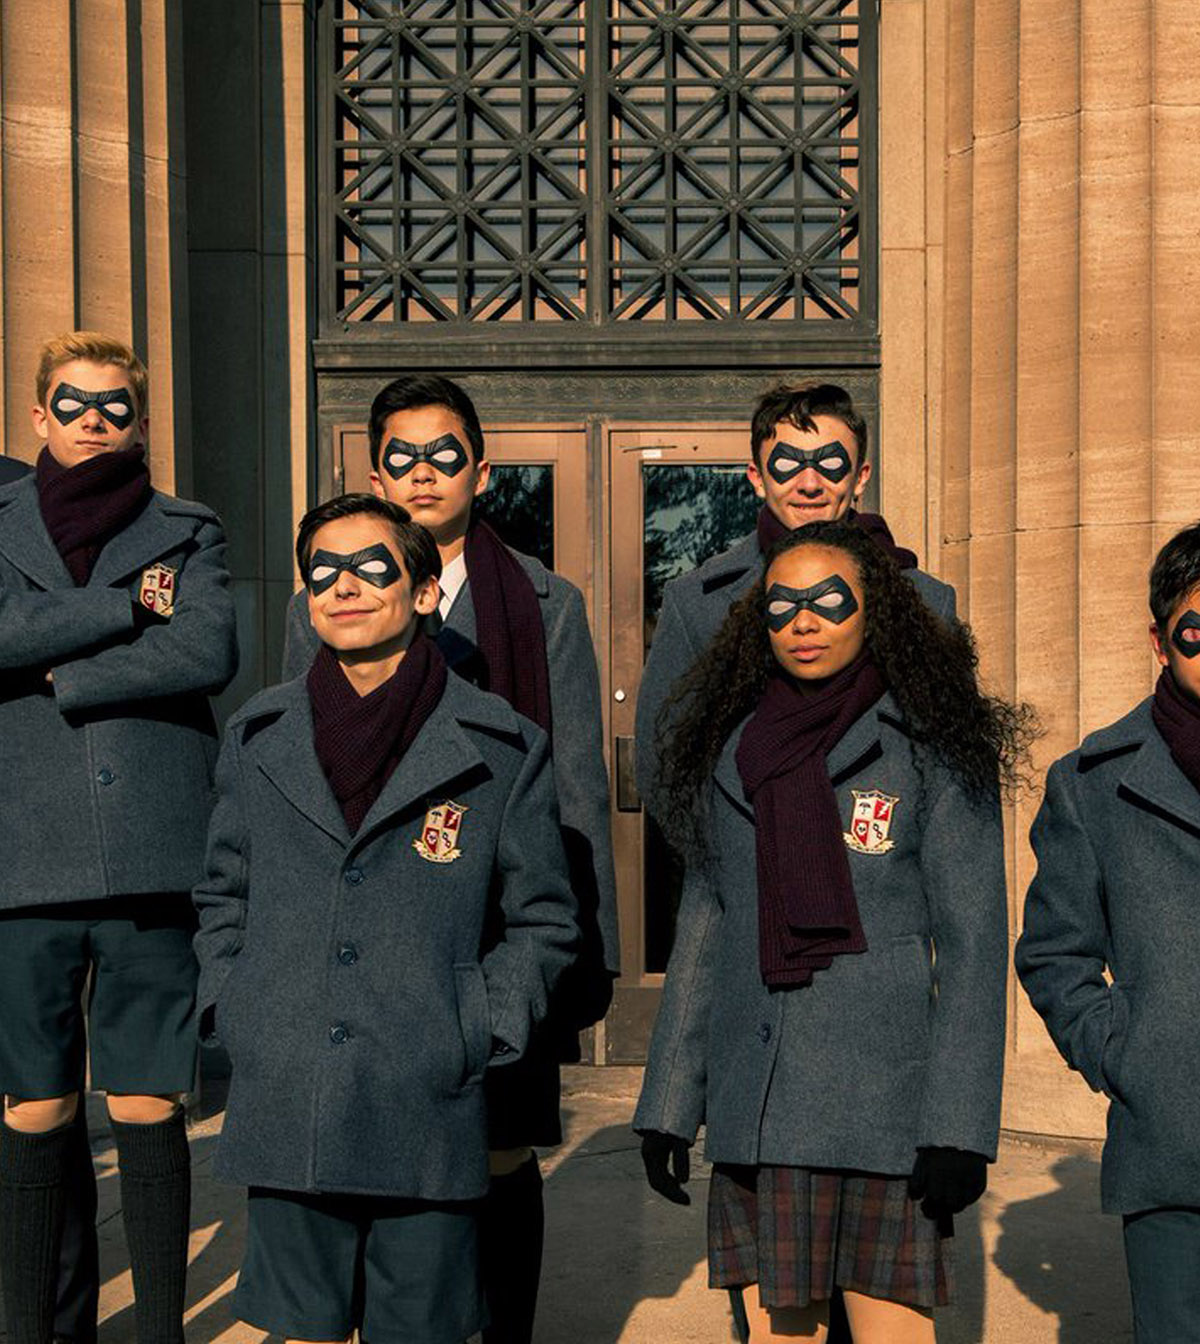 The Umbrella Academy techbizdesign hall of fame